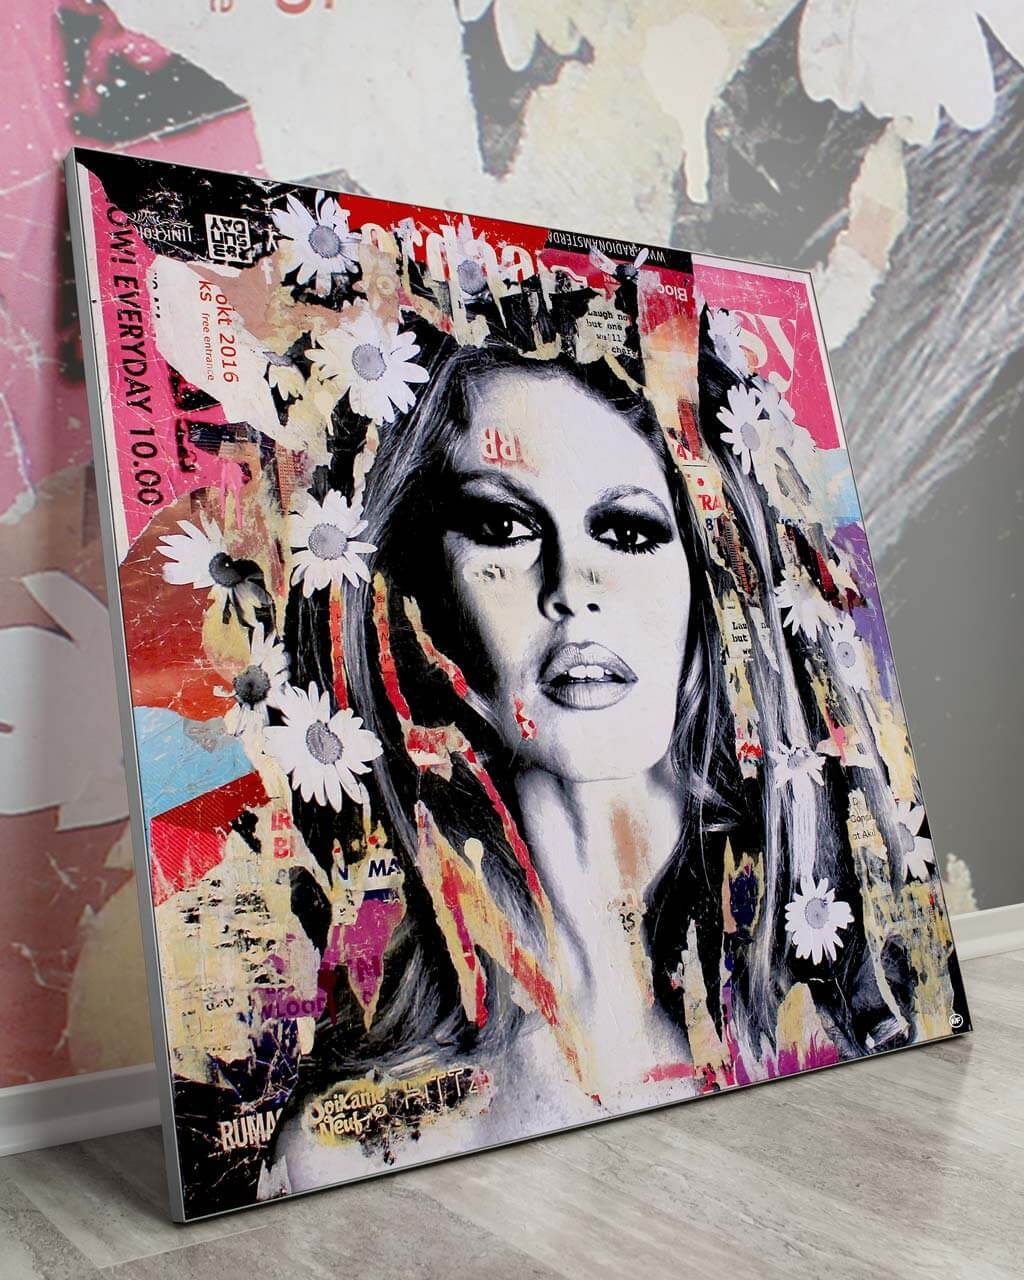 Modern Home Decor Brigitte Bardot Pop Art Celebrity Gigantic Big Biggest Massive Huge Large Largest Giant Wall Décor Art Backlit Fabric Home Deco Artwork Michiel Folkers